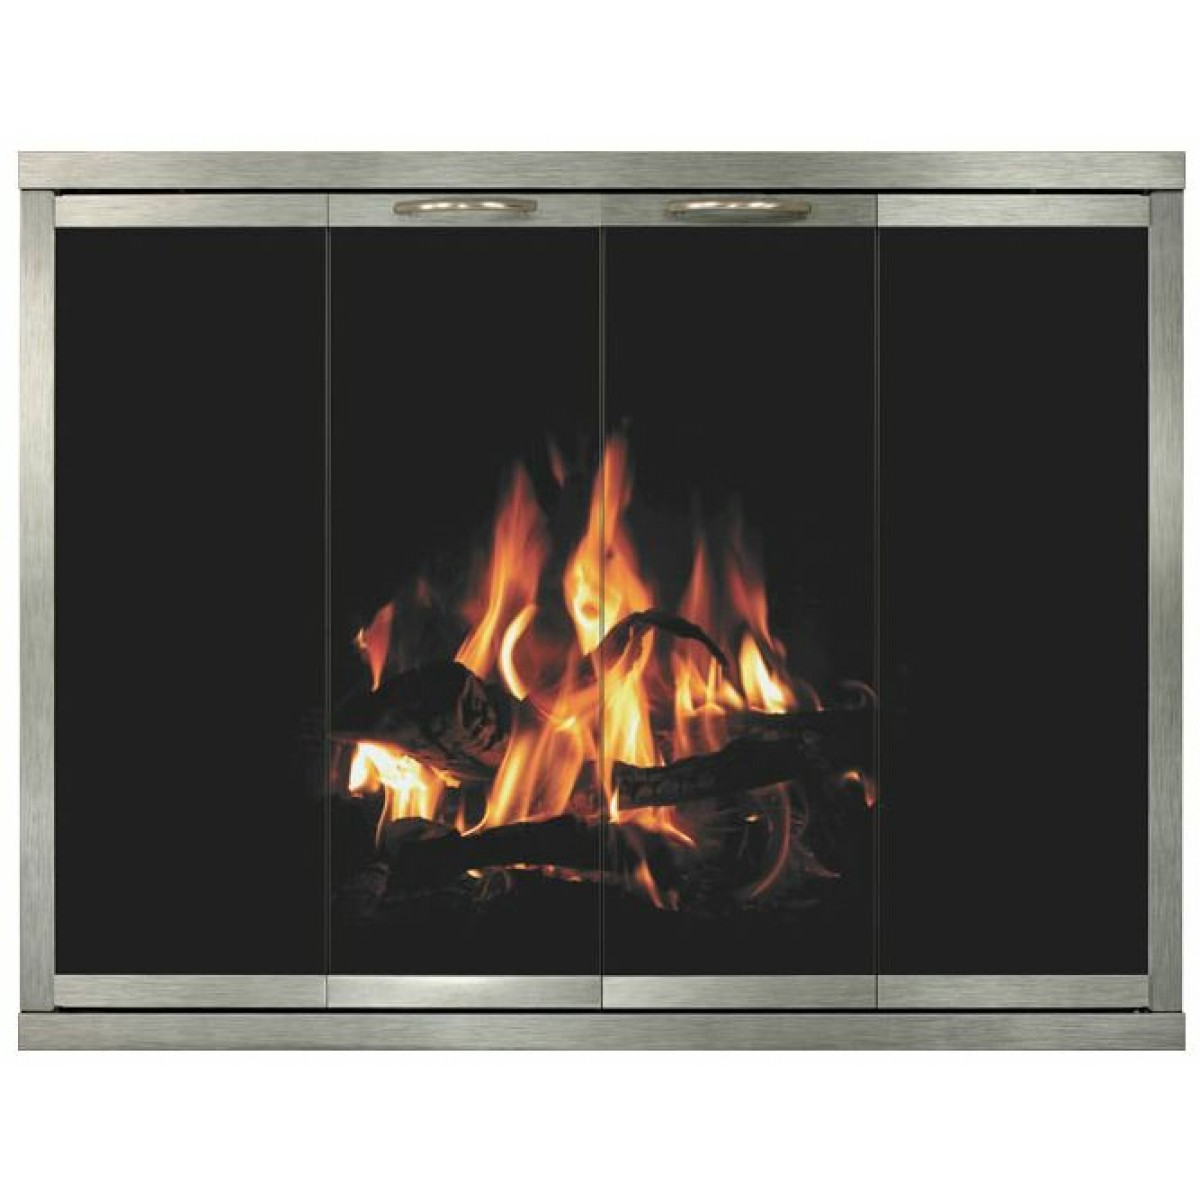 Fantastic Fmi Fireplaces | Splendiferous Fmi Fireplace